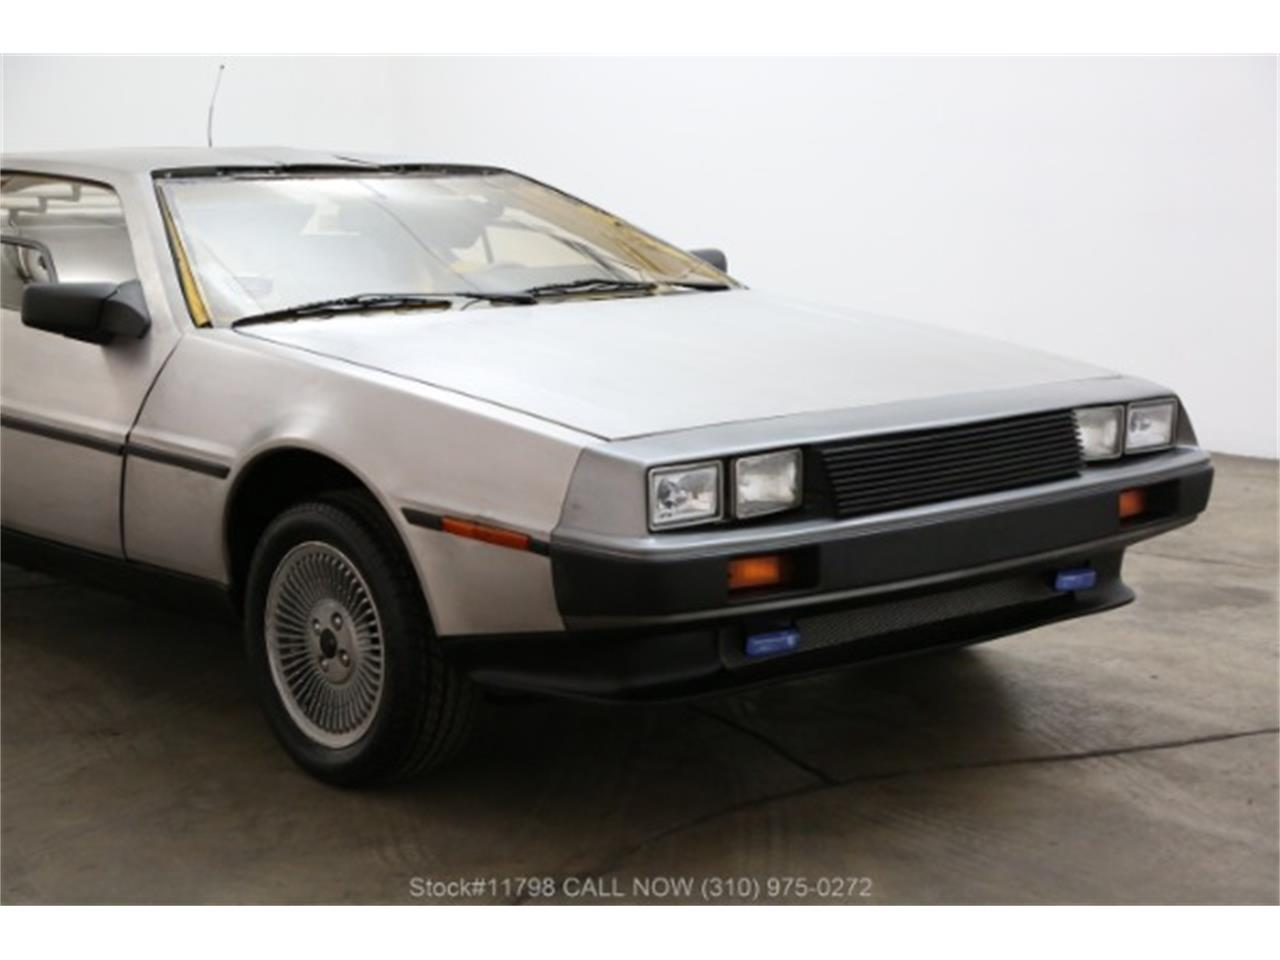 1981 DeLorean DMC-12 (CC-1332145) for sale in Beverly Hills, California